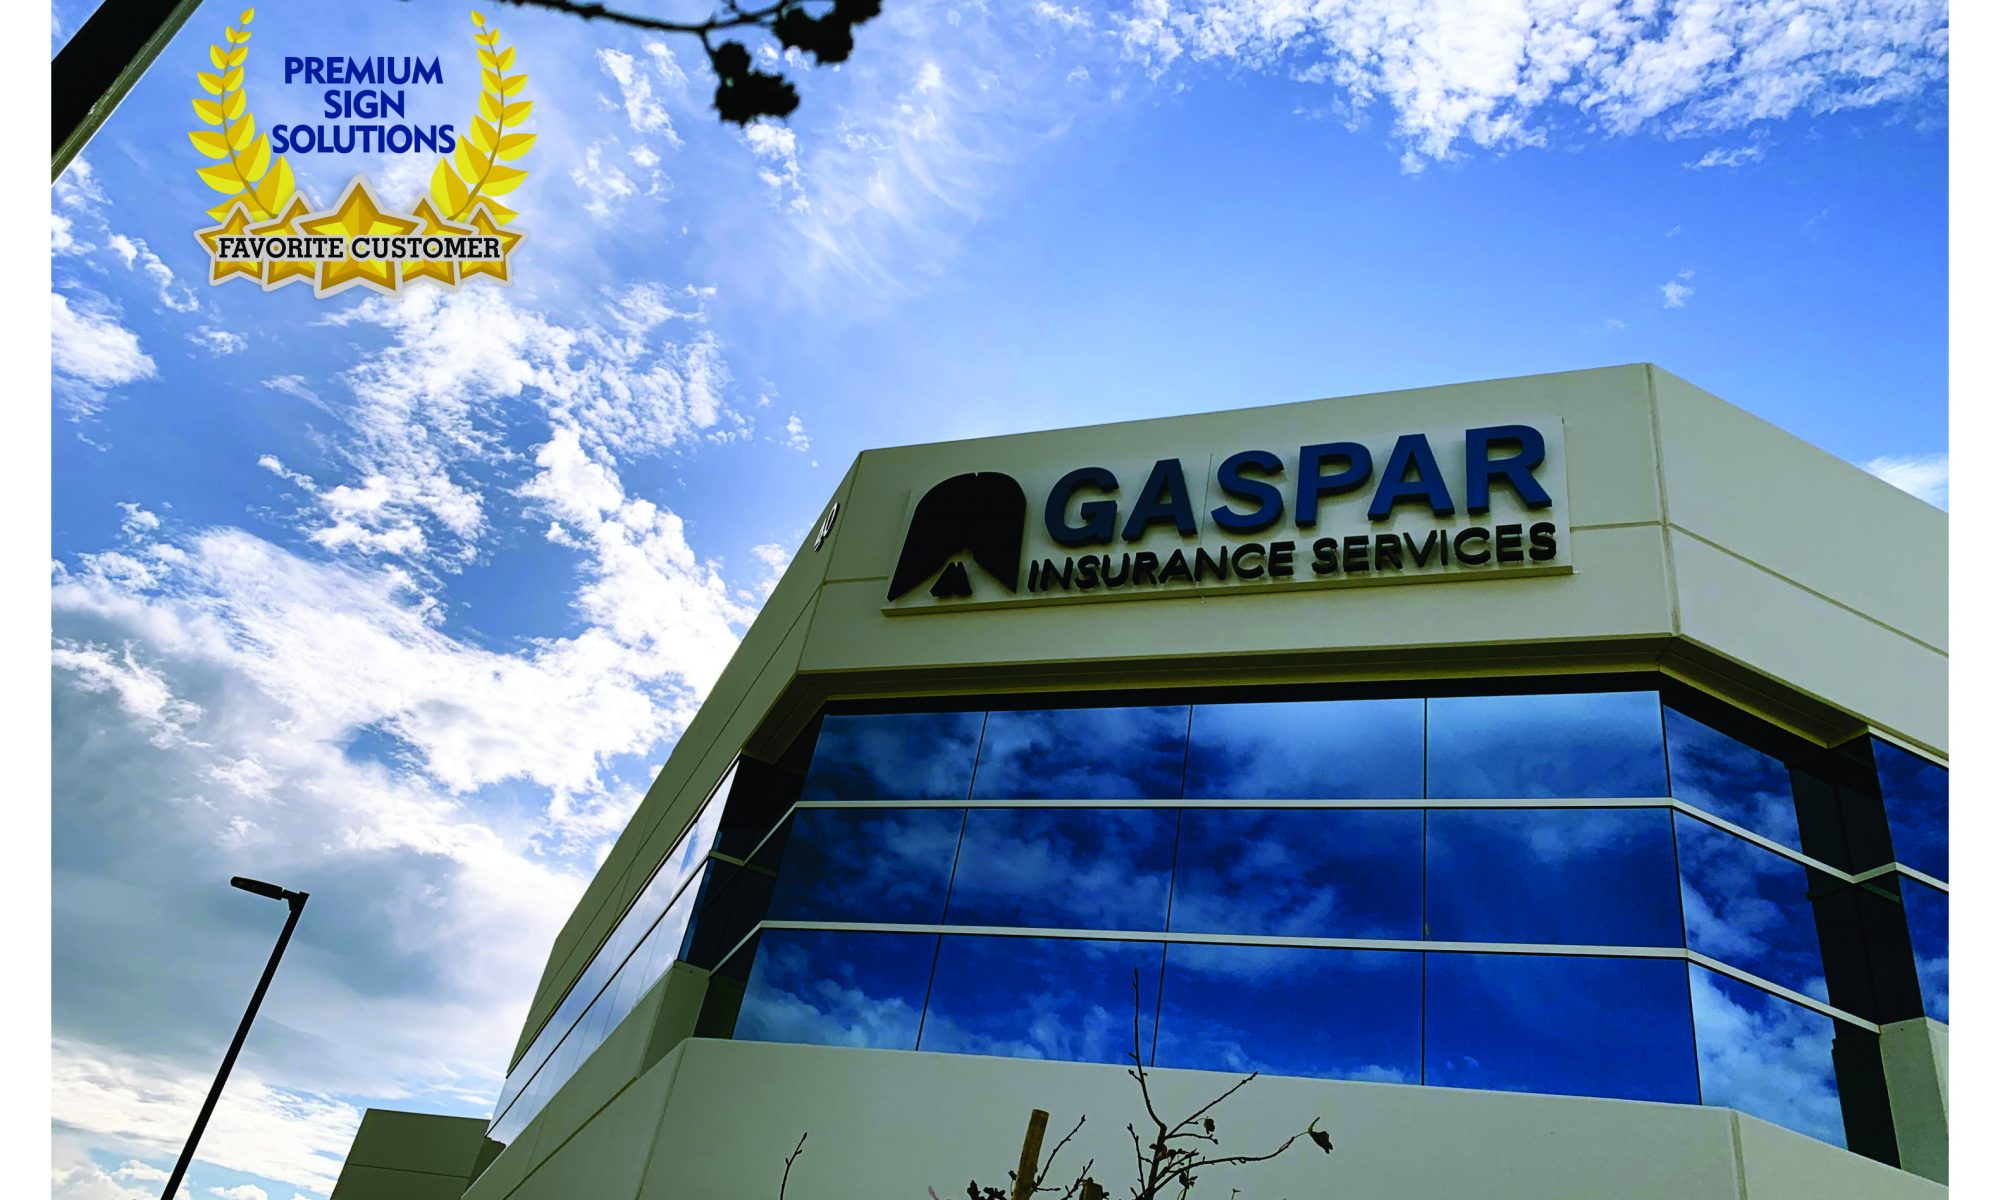 One of our favorite customers, Gaspar Insurance Services, wants to save you money TODAY and support our local restaurants in the process! Here's how: